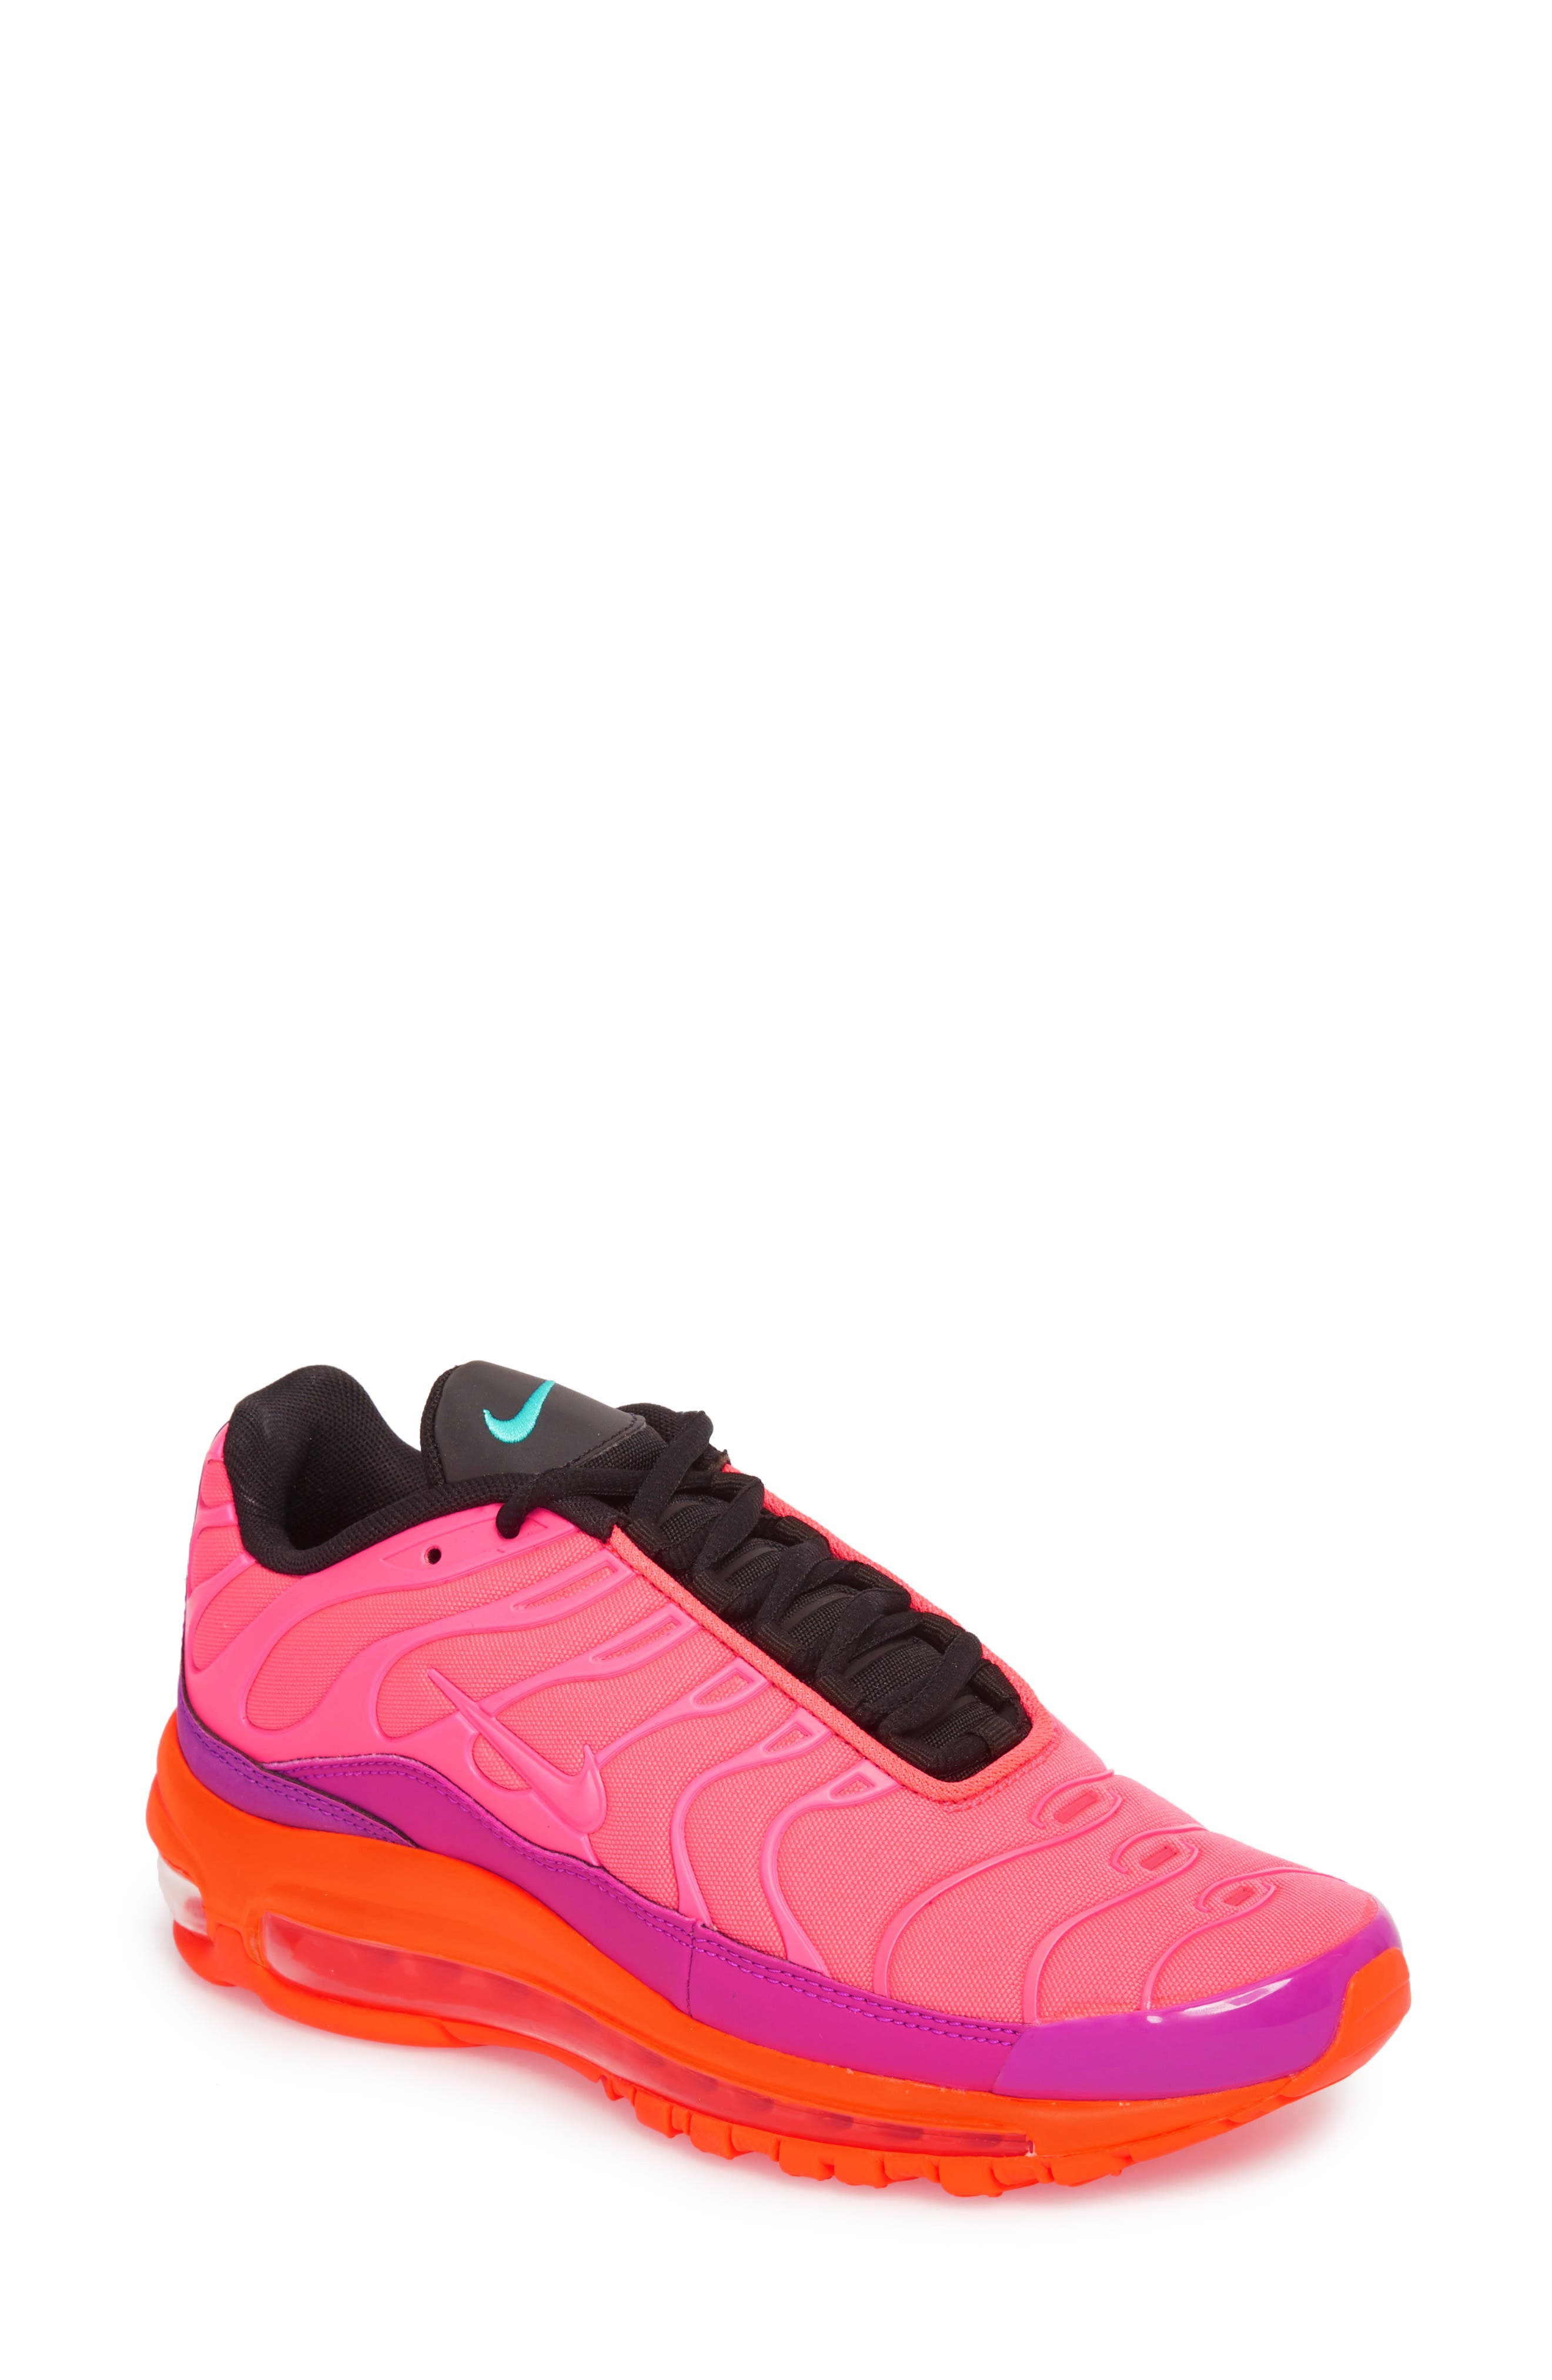 Air Max 97 Plus Sneaker,                         Main,                         color, RACER PINK/ MAGENTA/ CRIMSON